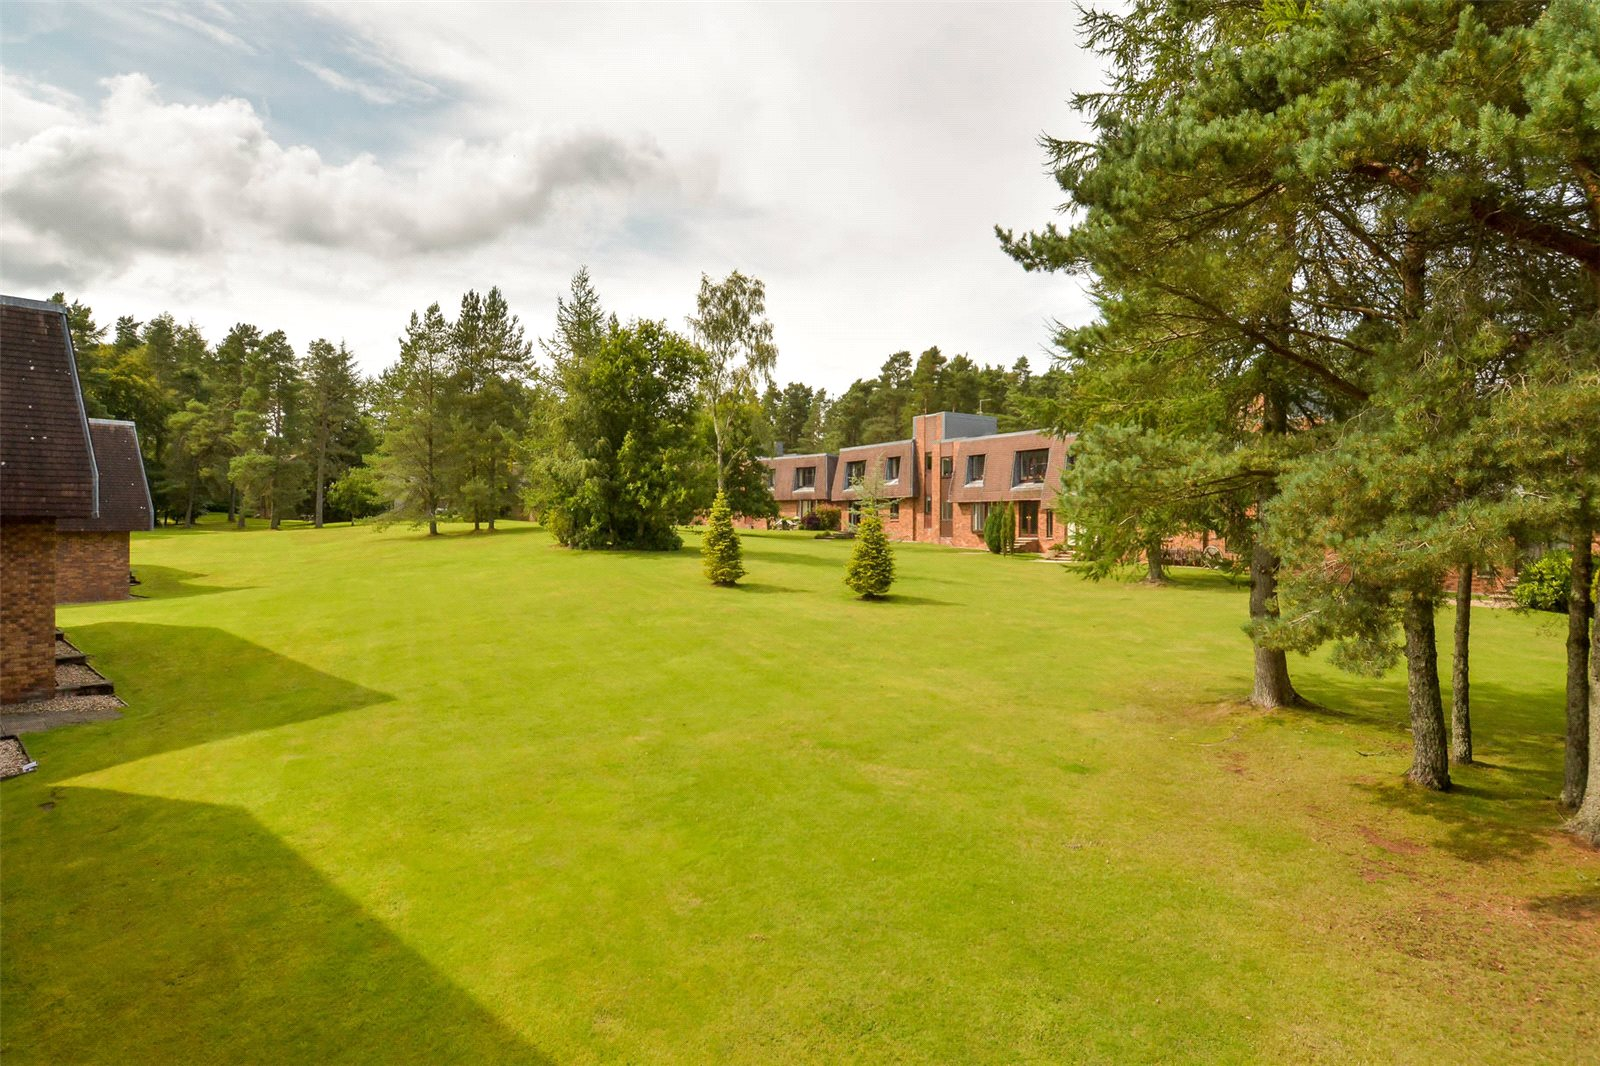 4 Bedrooms Apartment Flat for sale in 2 Glamis Court, Gleneagles Village, Auchterarder, Perthshire, PH3